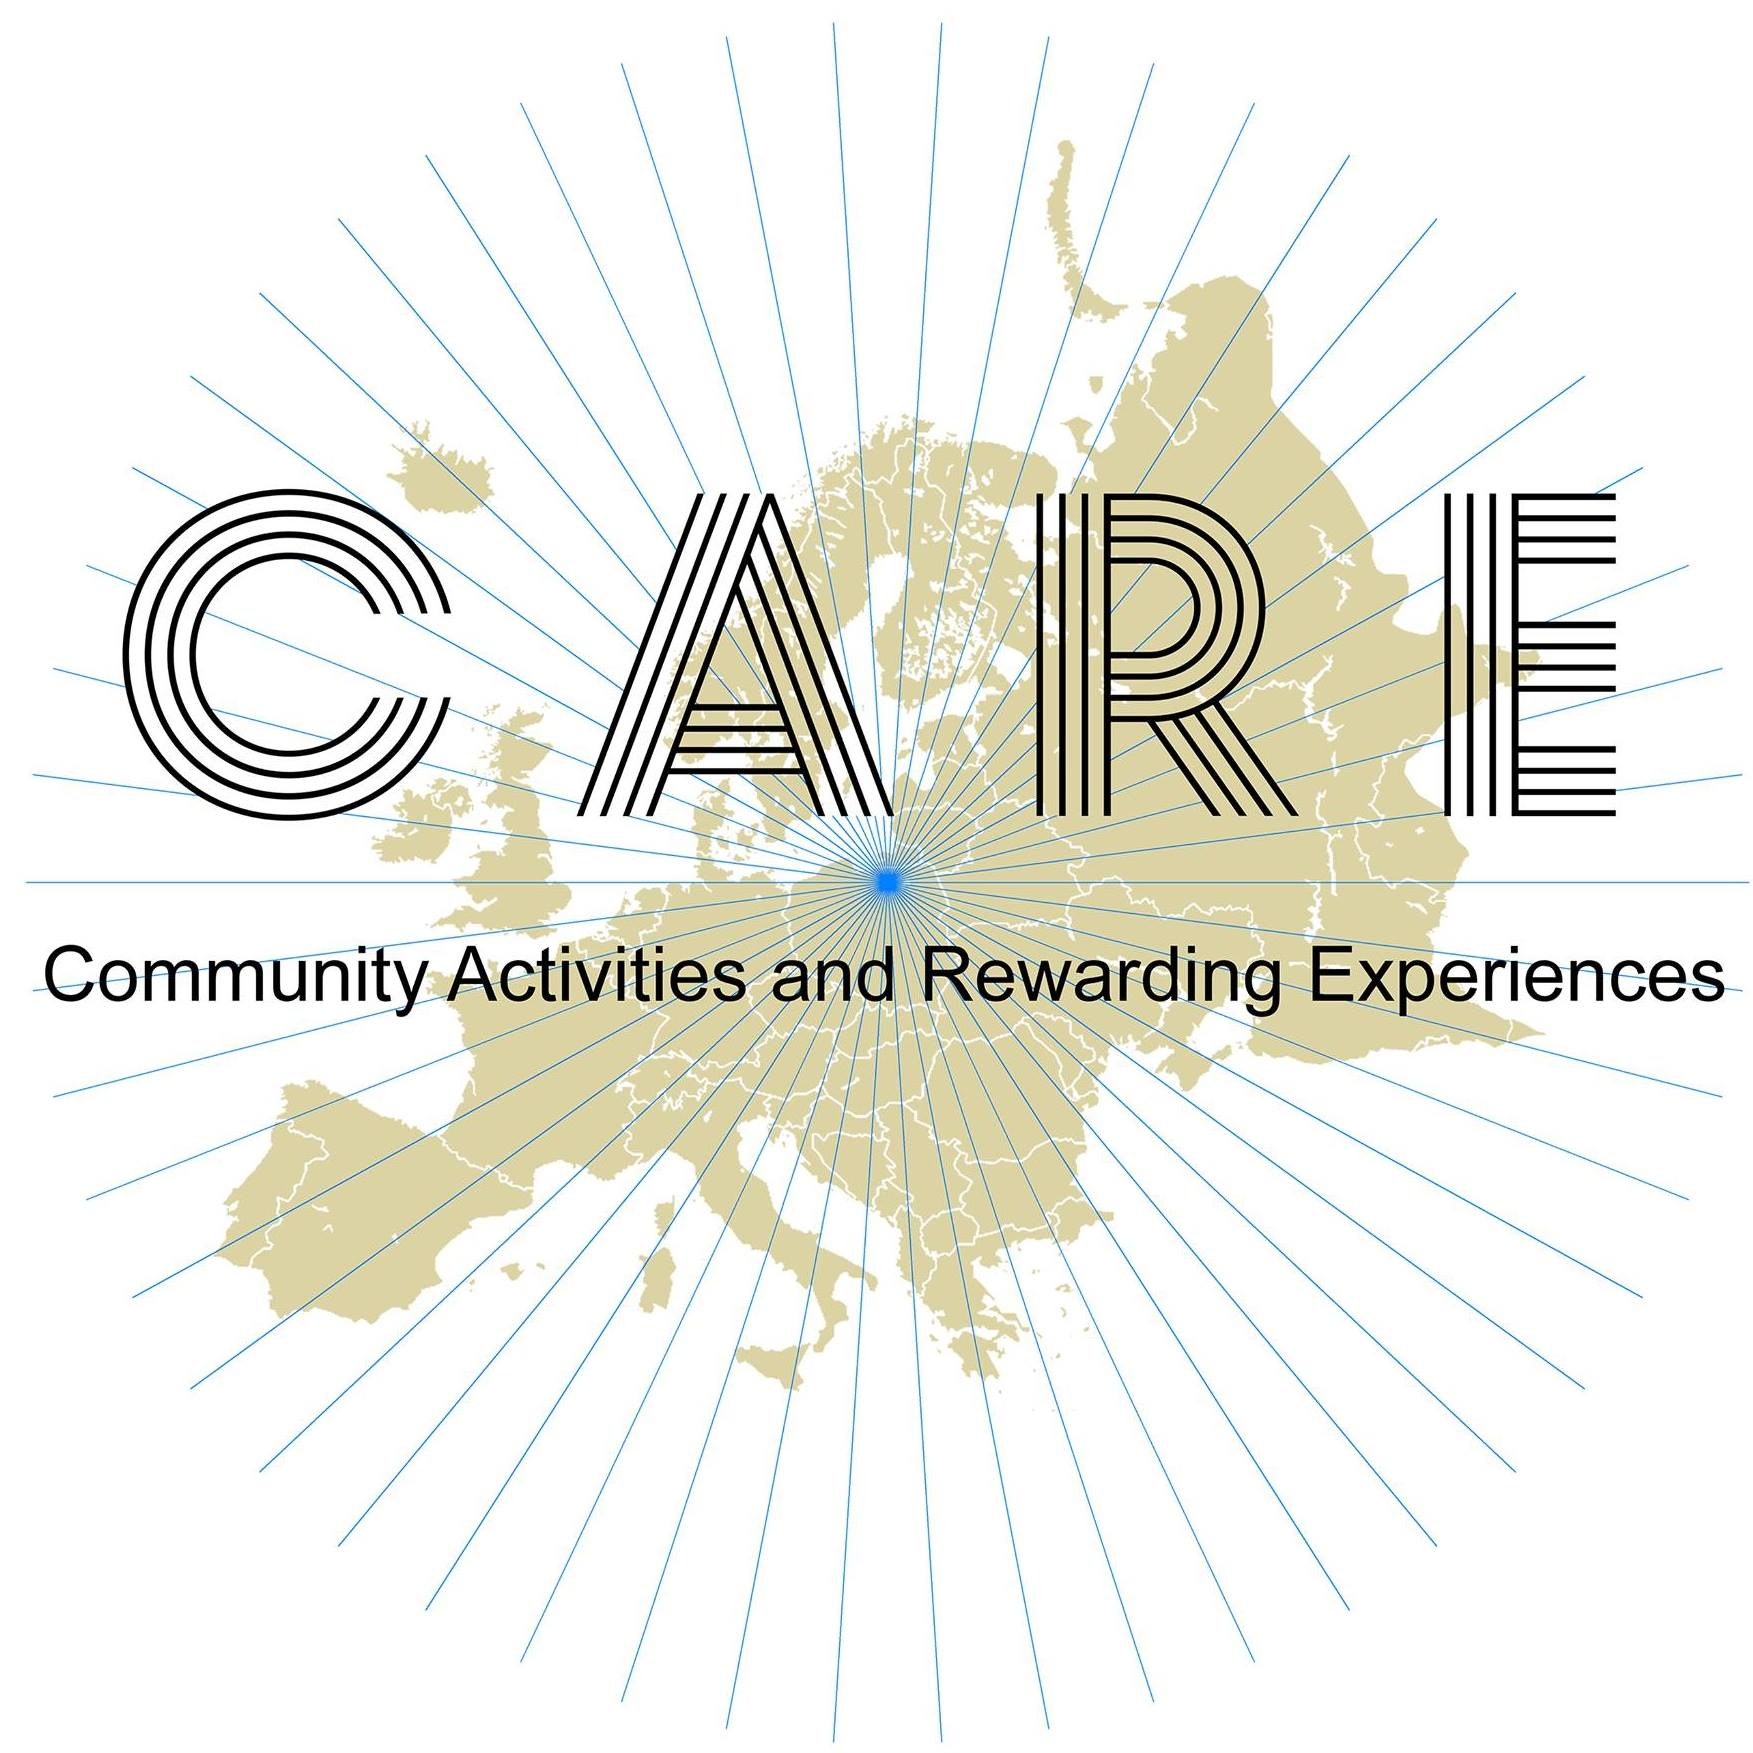 CARE Community Activities and Rewarding Experiences